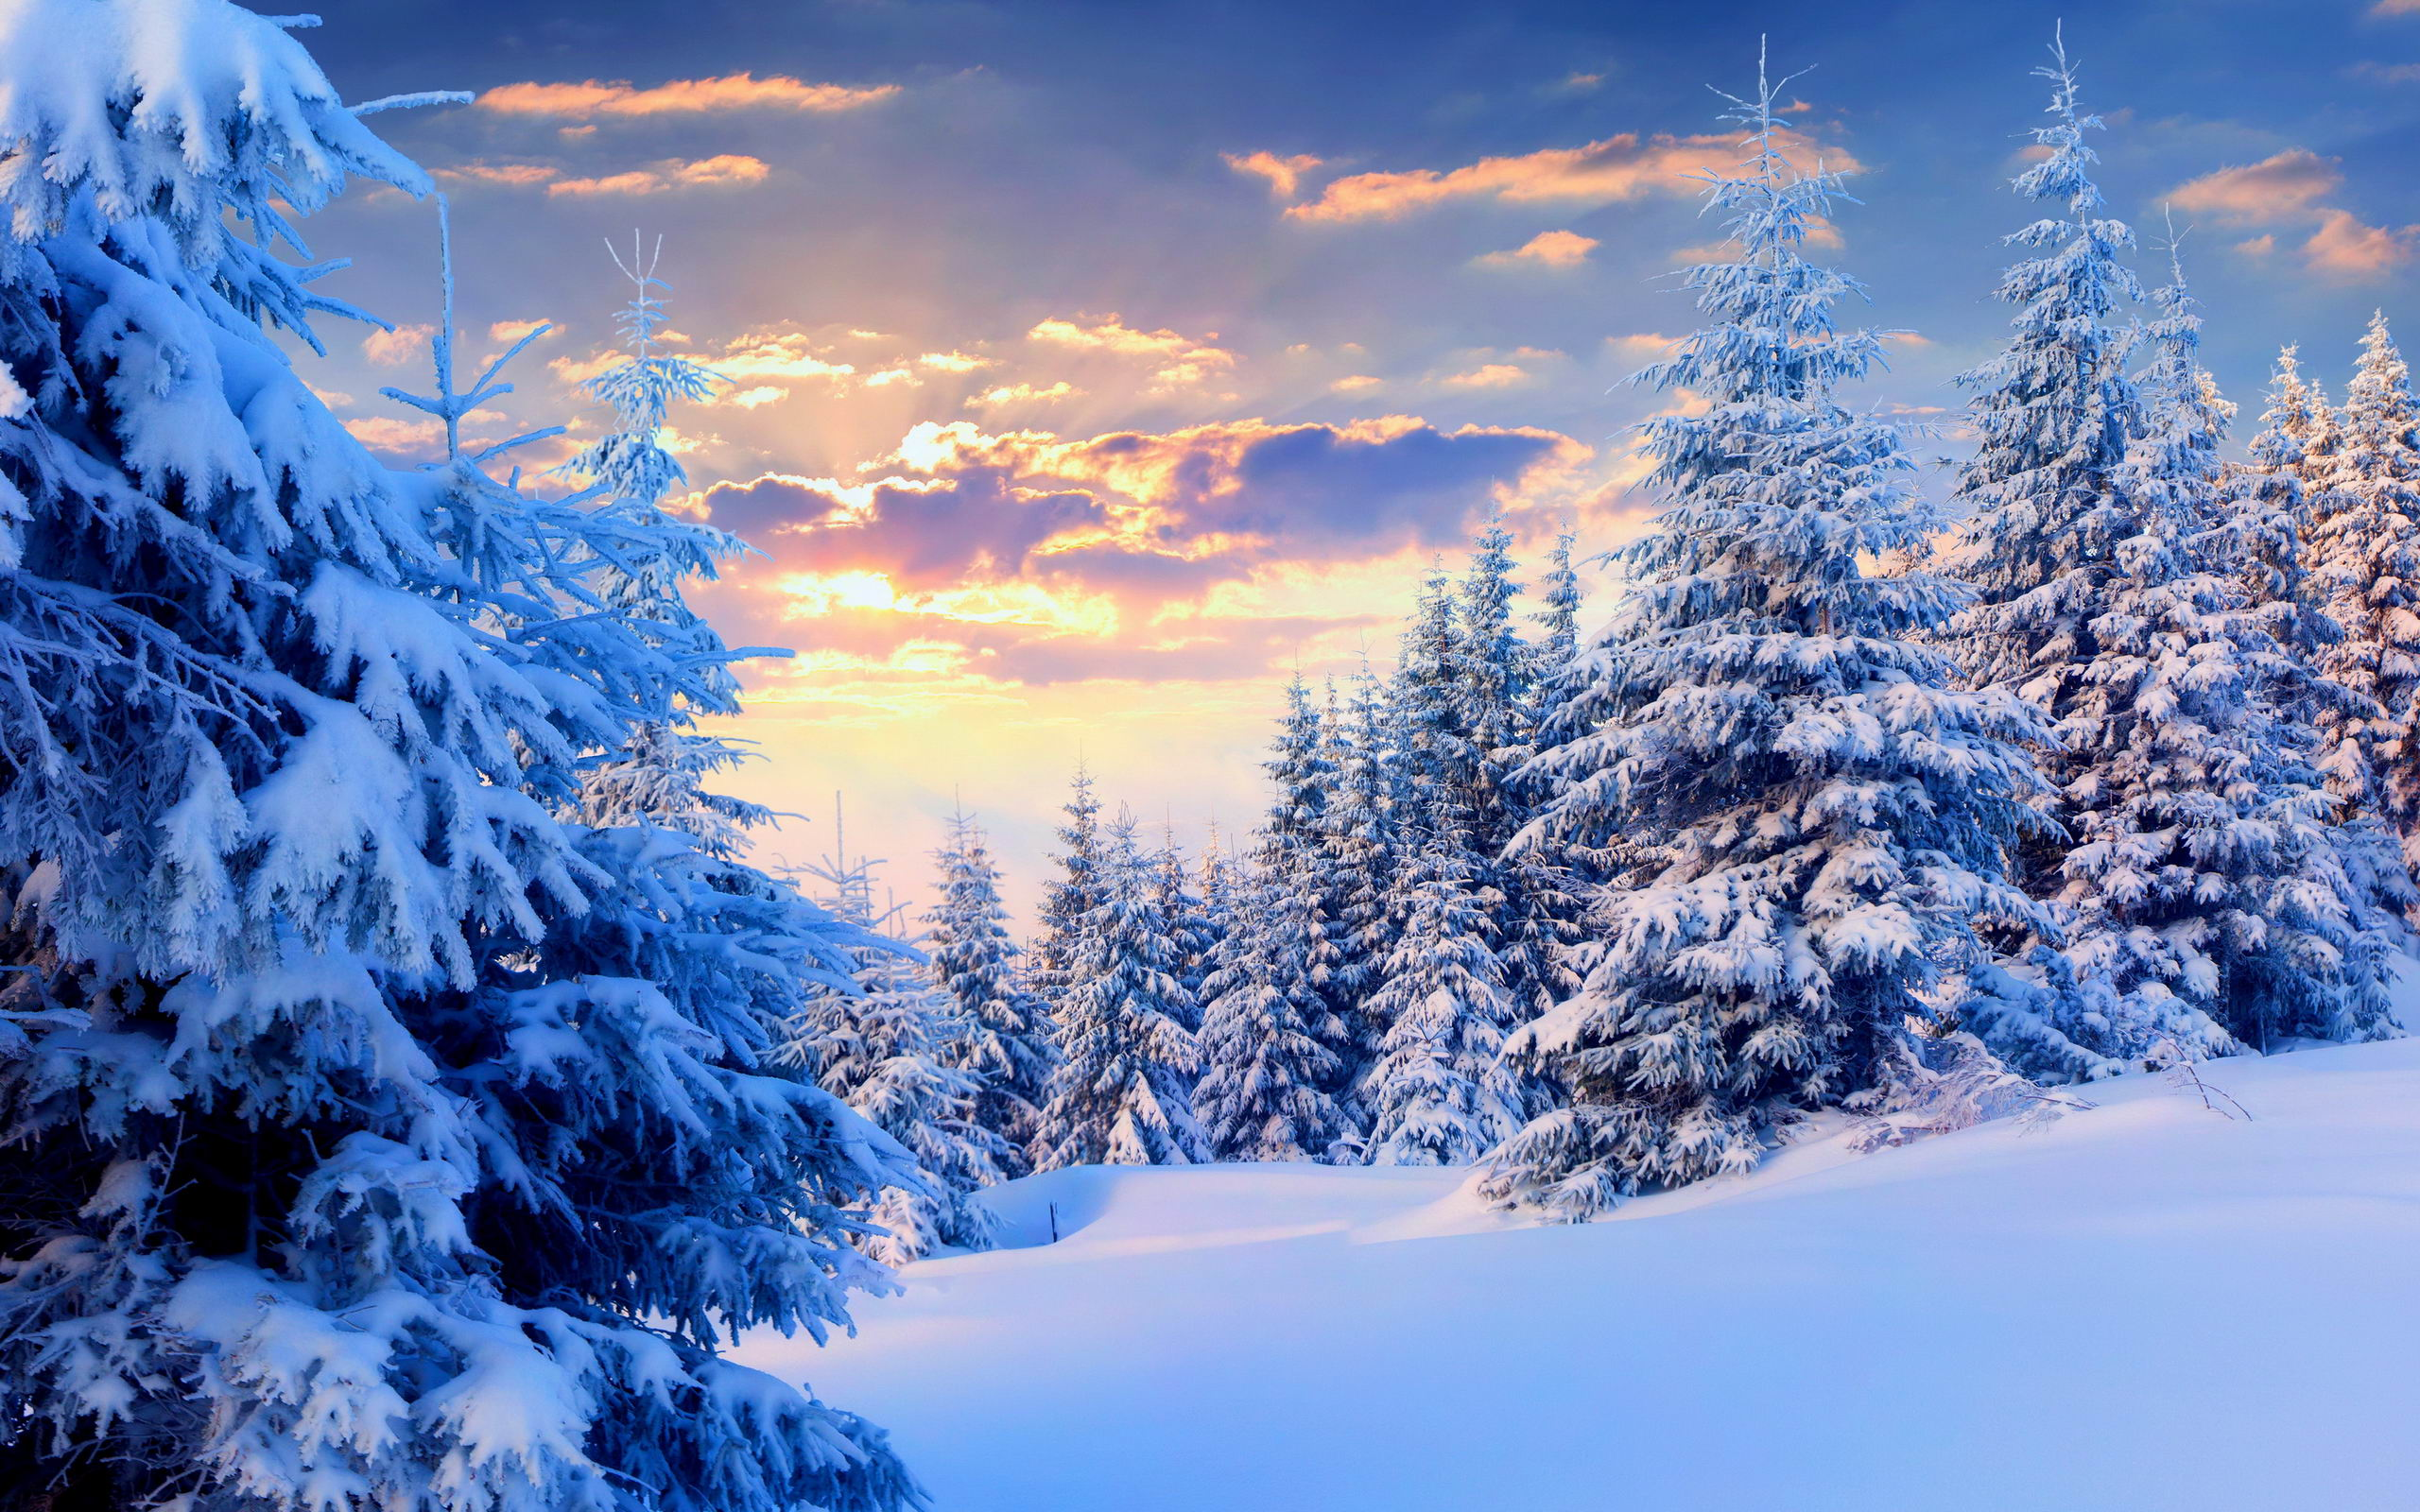 Firs under snow forest wallpapers firs under snow forest Beautiful snowfall pictures